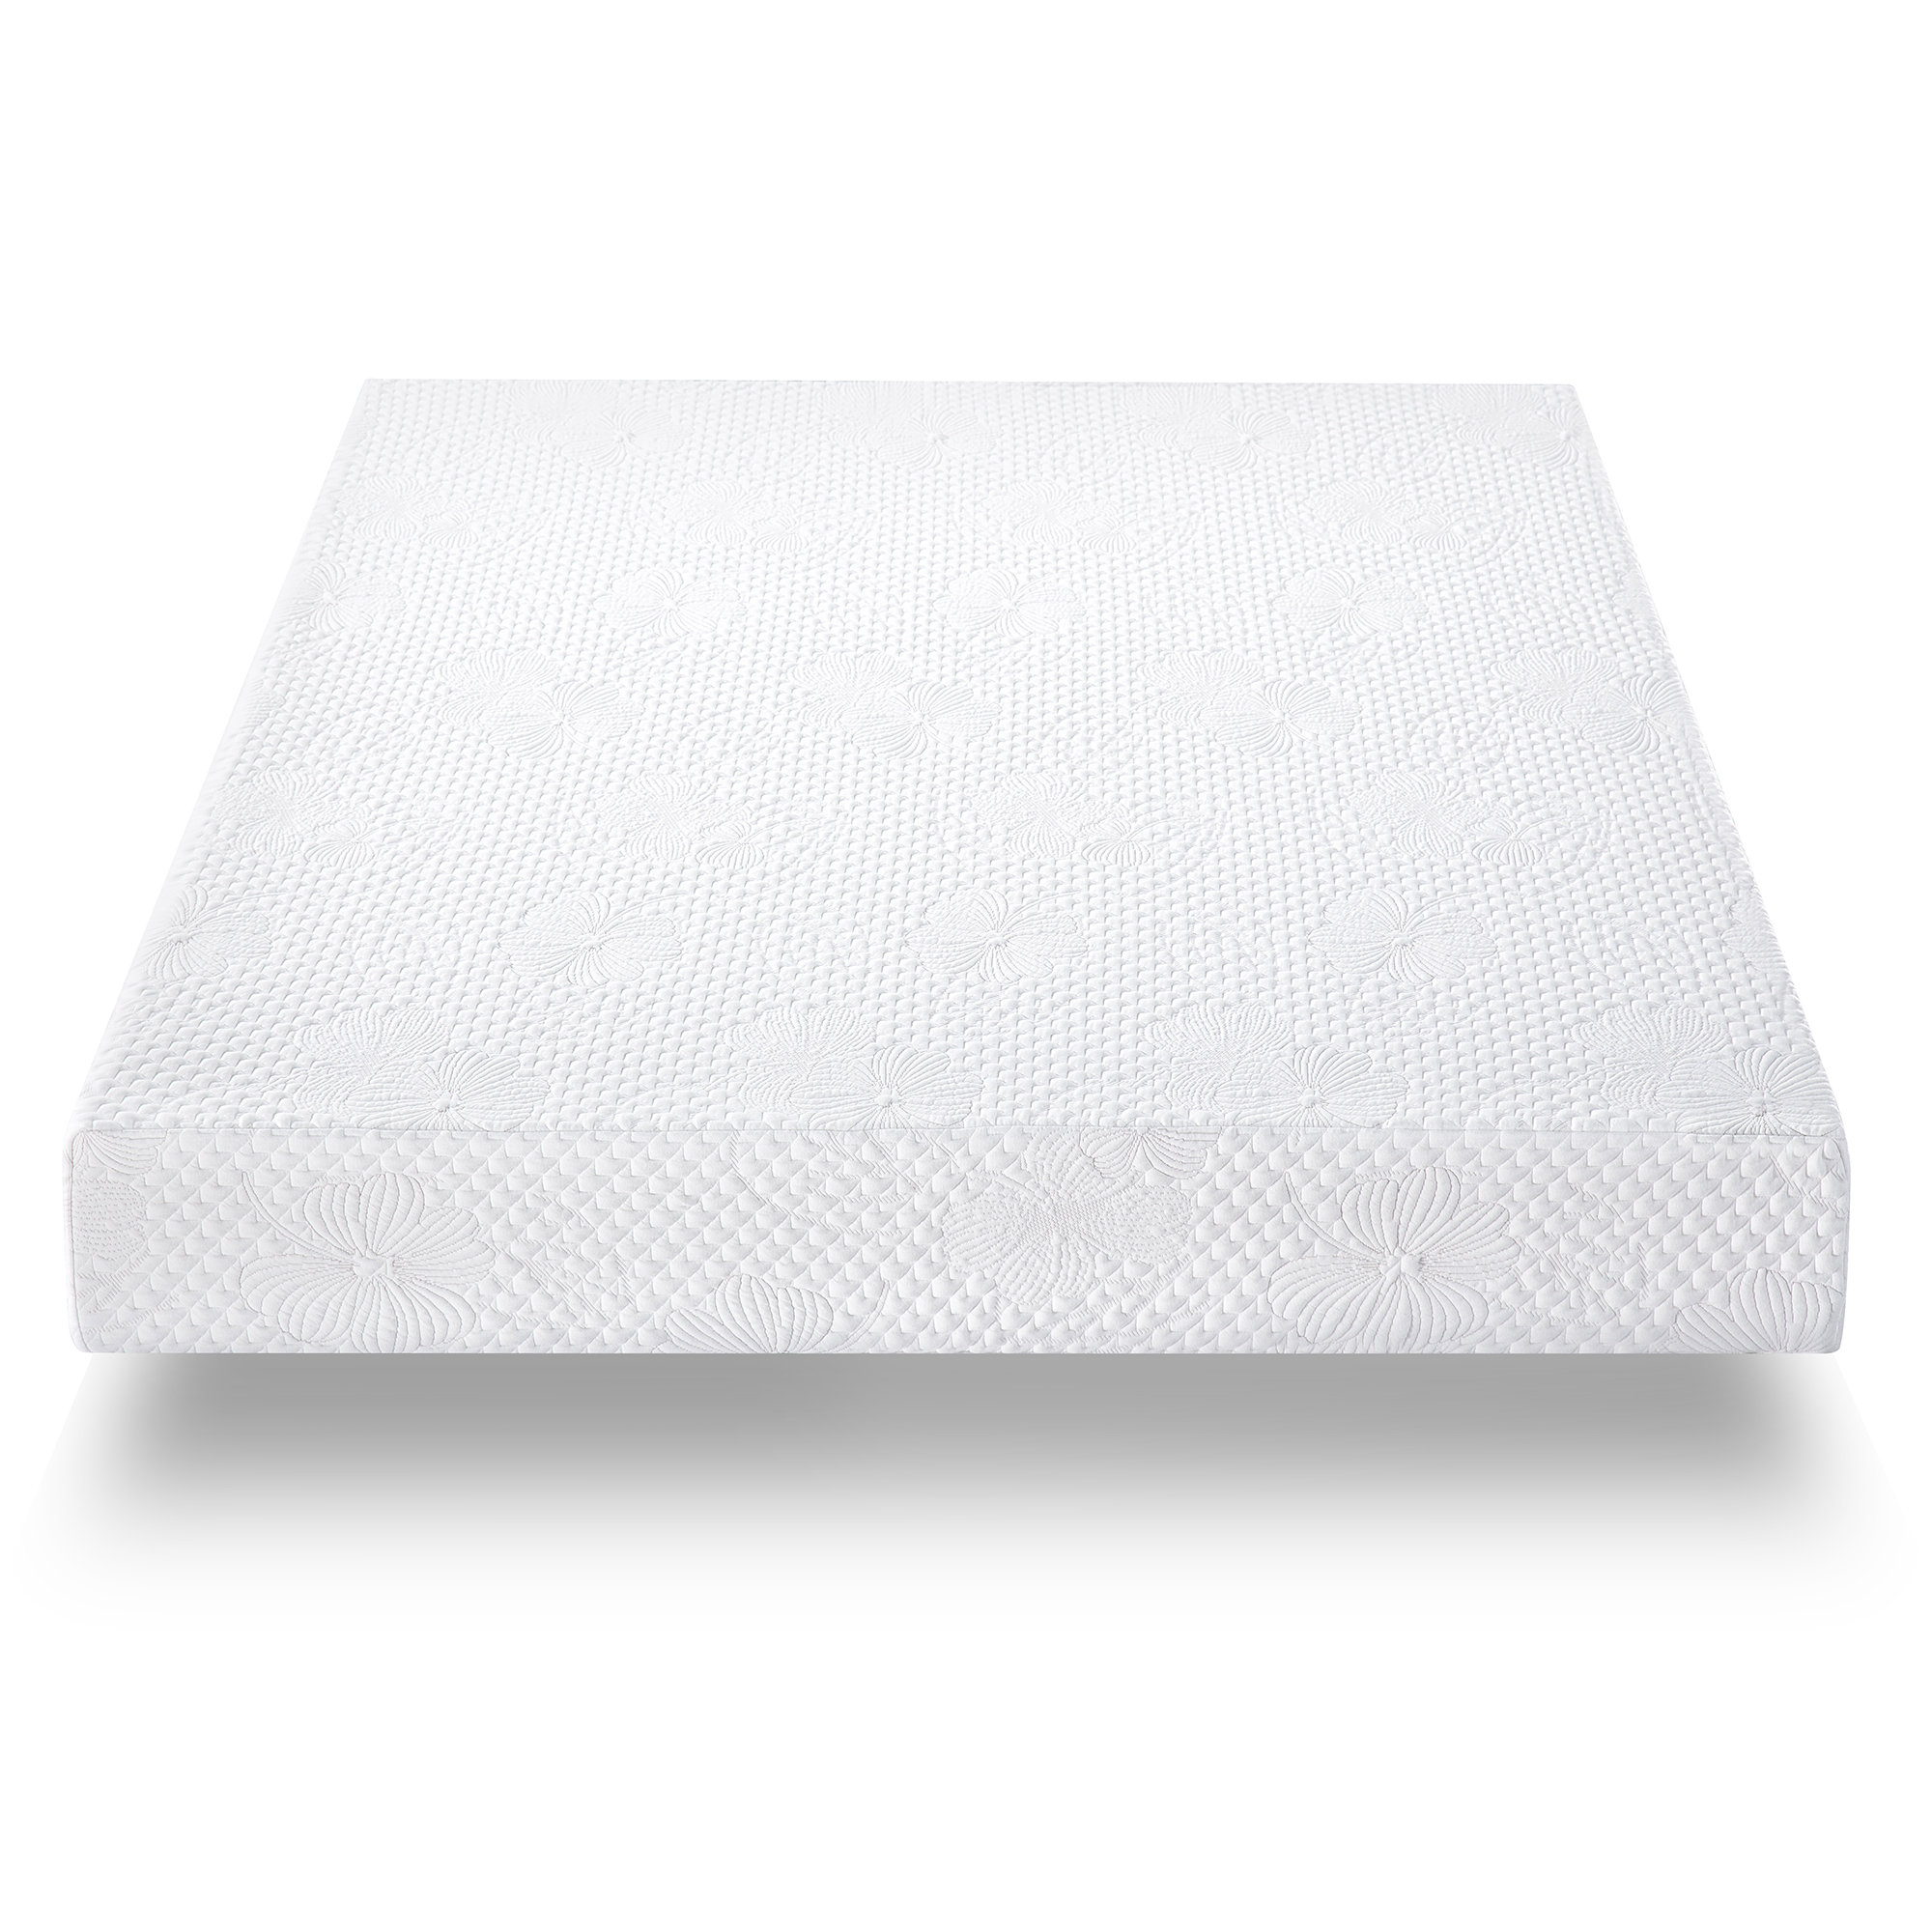 "GranRest 6"" Saturn Comfort Memory Foam Mattress Mattress-in-a-Box by Grantec Co., Ltd"